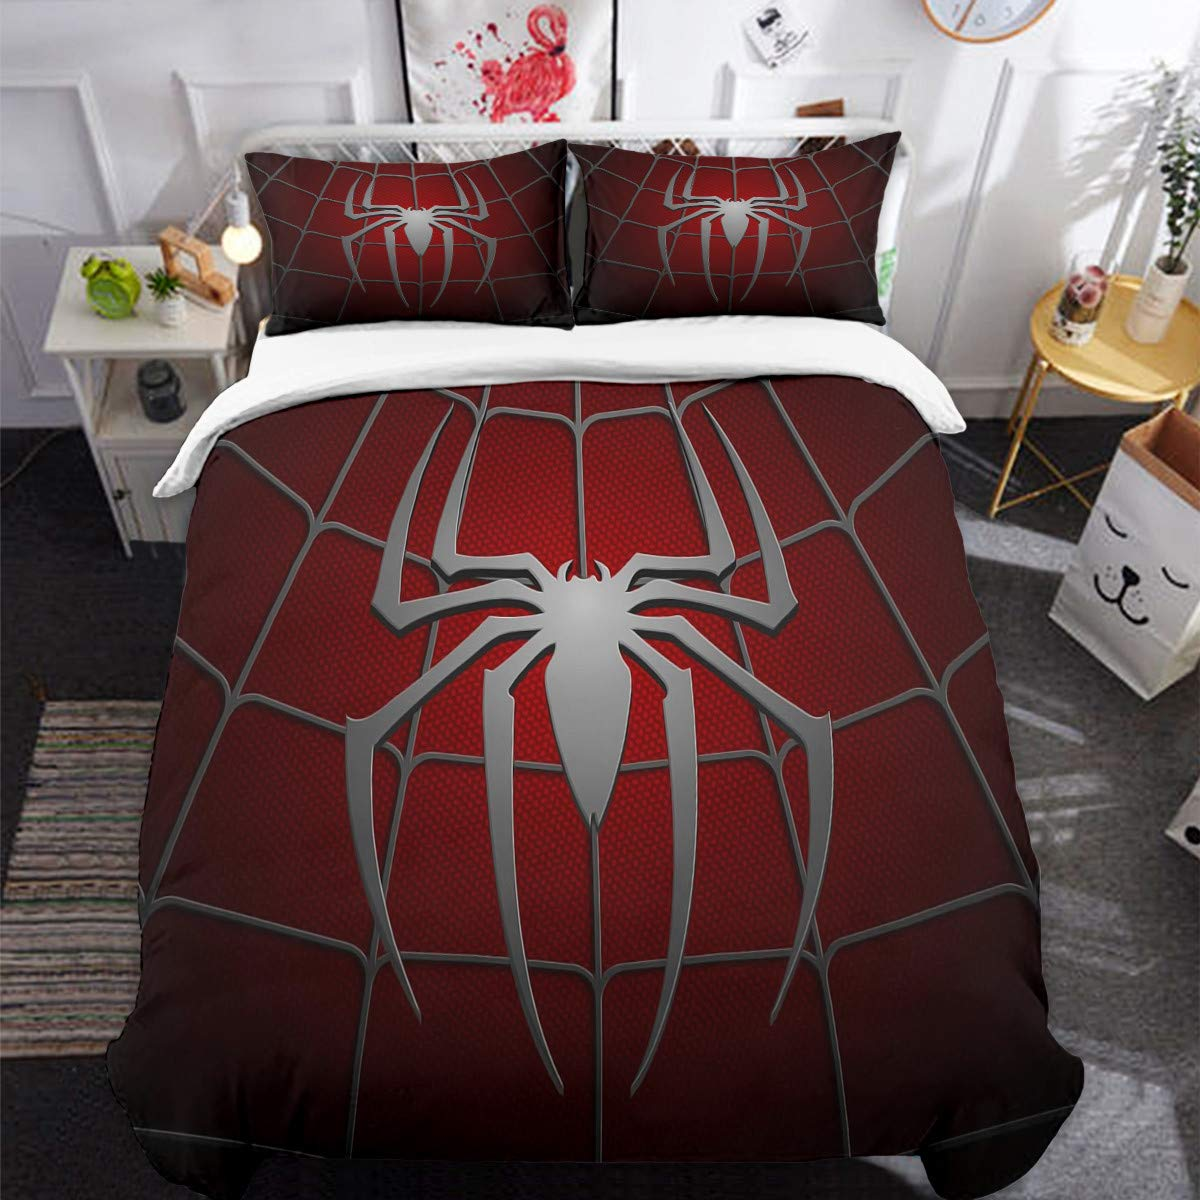 3D Printed Spider Queen Bedding Set for Children Teens Spider Web Pattern Duvet Cover Set with 2 Pillowcases Dark Red Comforter Cover with Zipper Closure 90'' x 90''(Not Comforter) by Guidear